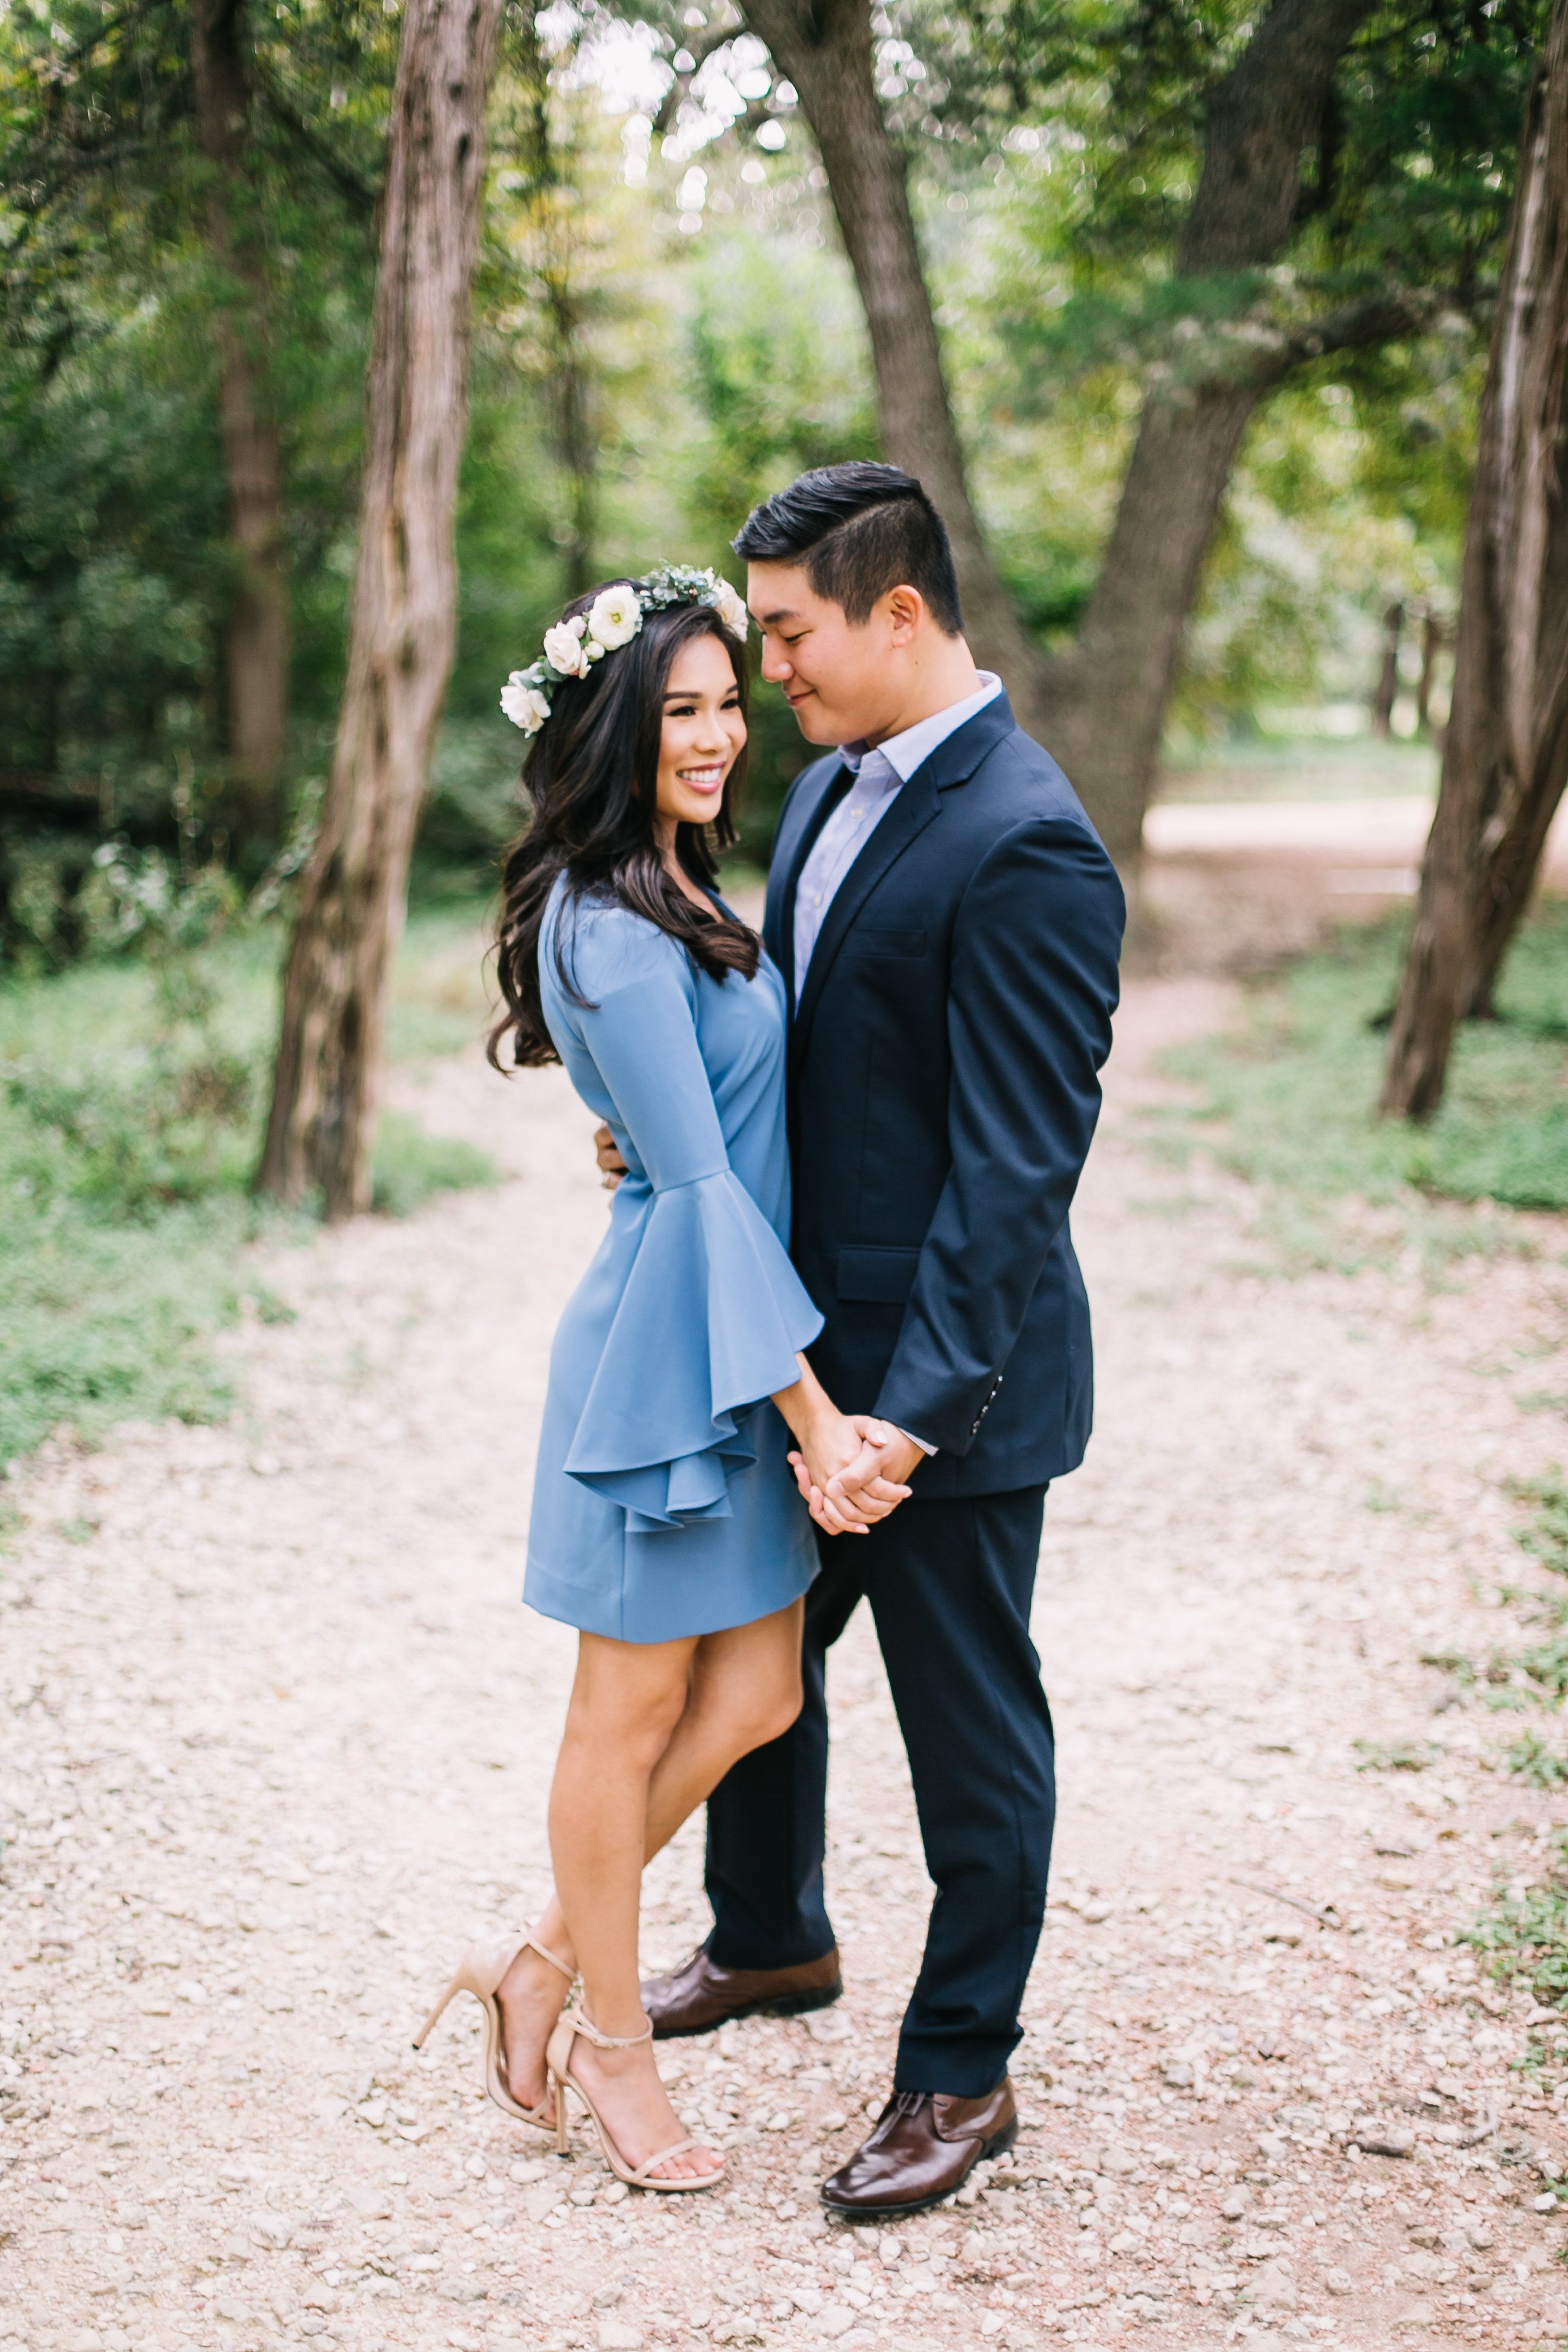 Pin By Color Chic On My Walk Down The Aisle Bell Sleeve Dress Dresses With Sleeves Engagement Photoshoot